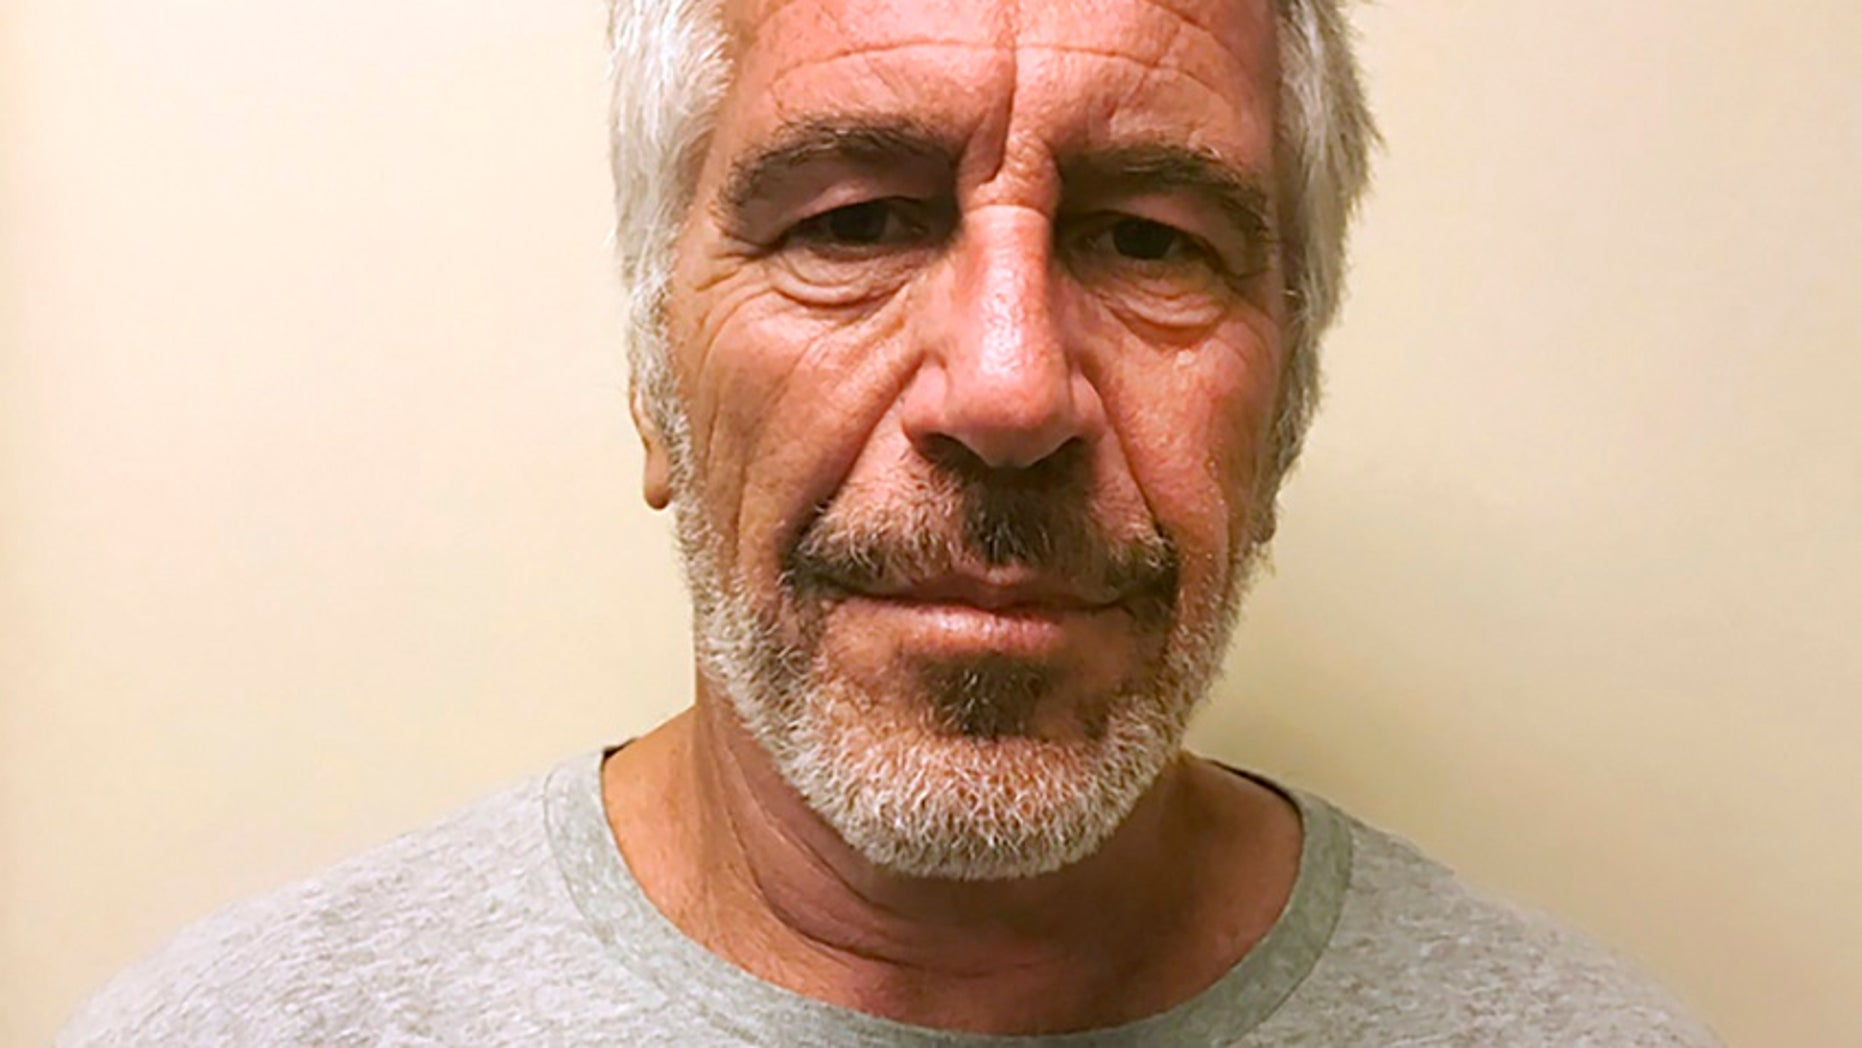 Westlake Legal Group df517604-AP19222471790918 Inside the mind of Jeffrey Epstein; Trump administration defends new green card rule fox-news/columns/fox-news-first fox news fnc/us fnc article 21fcb080-88d4-5f17-94a8-a6a71fb81d31